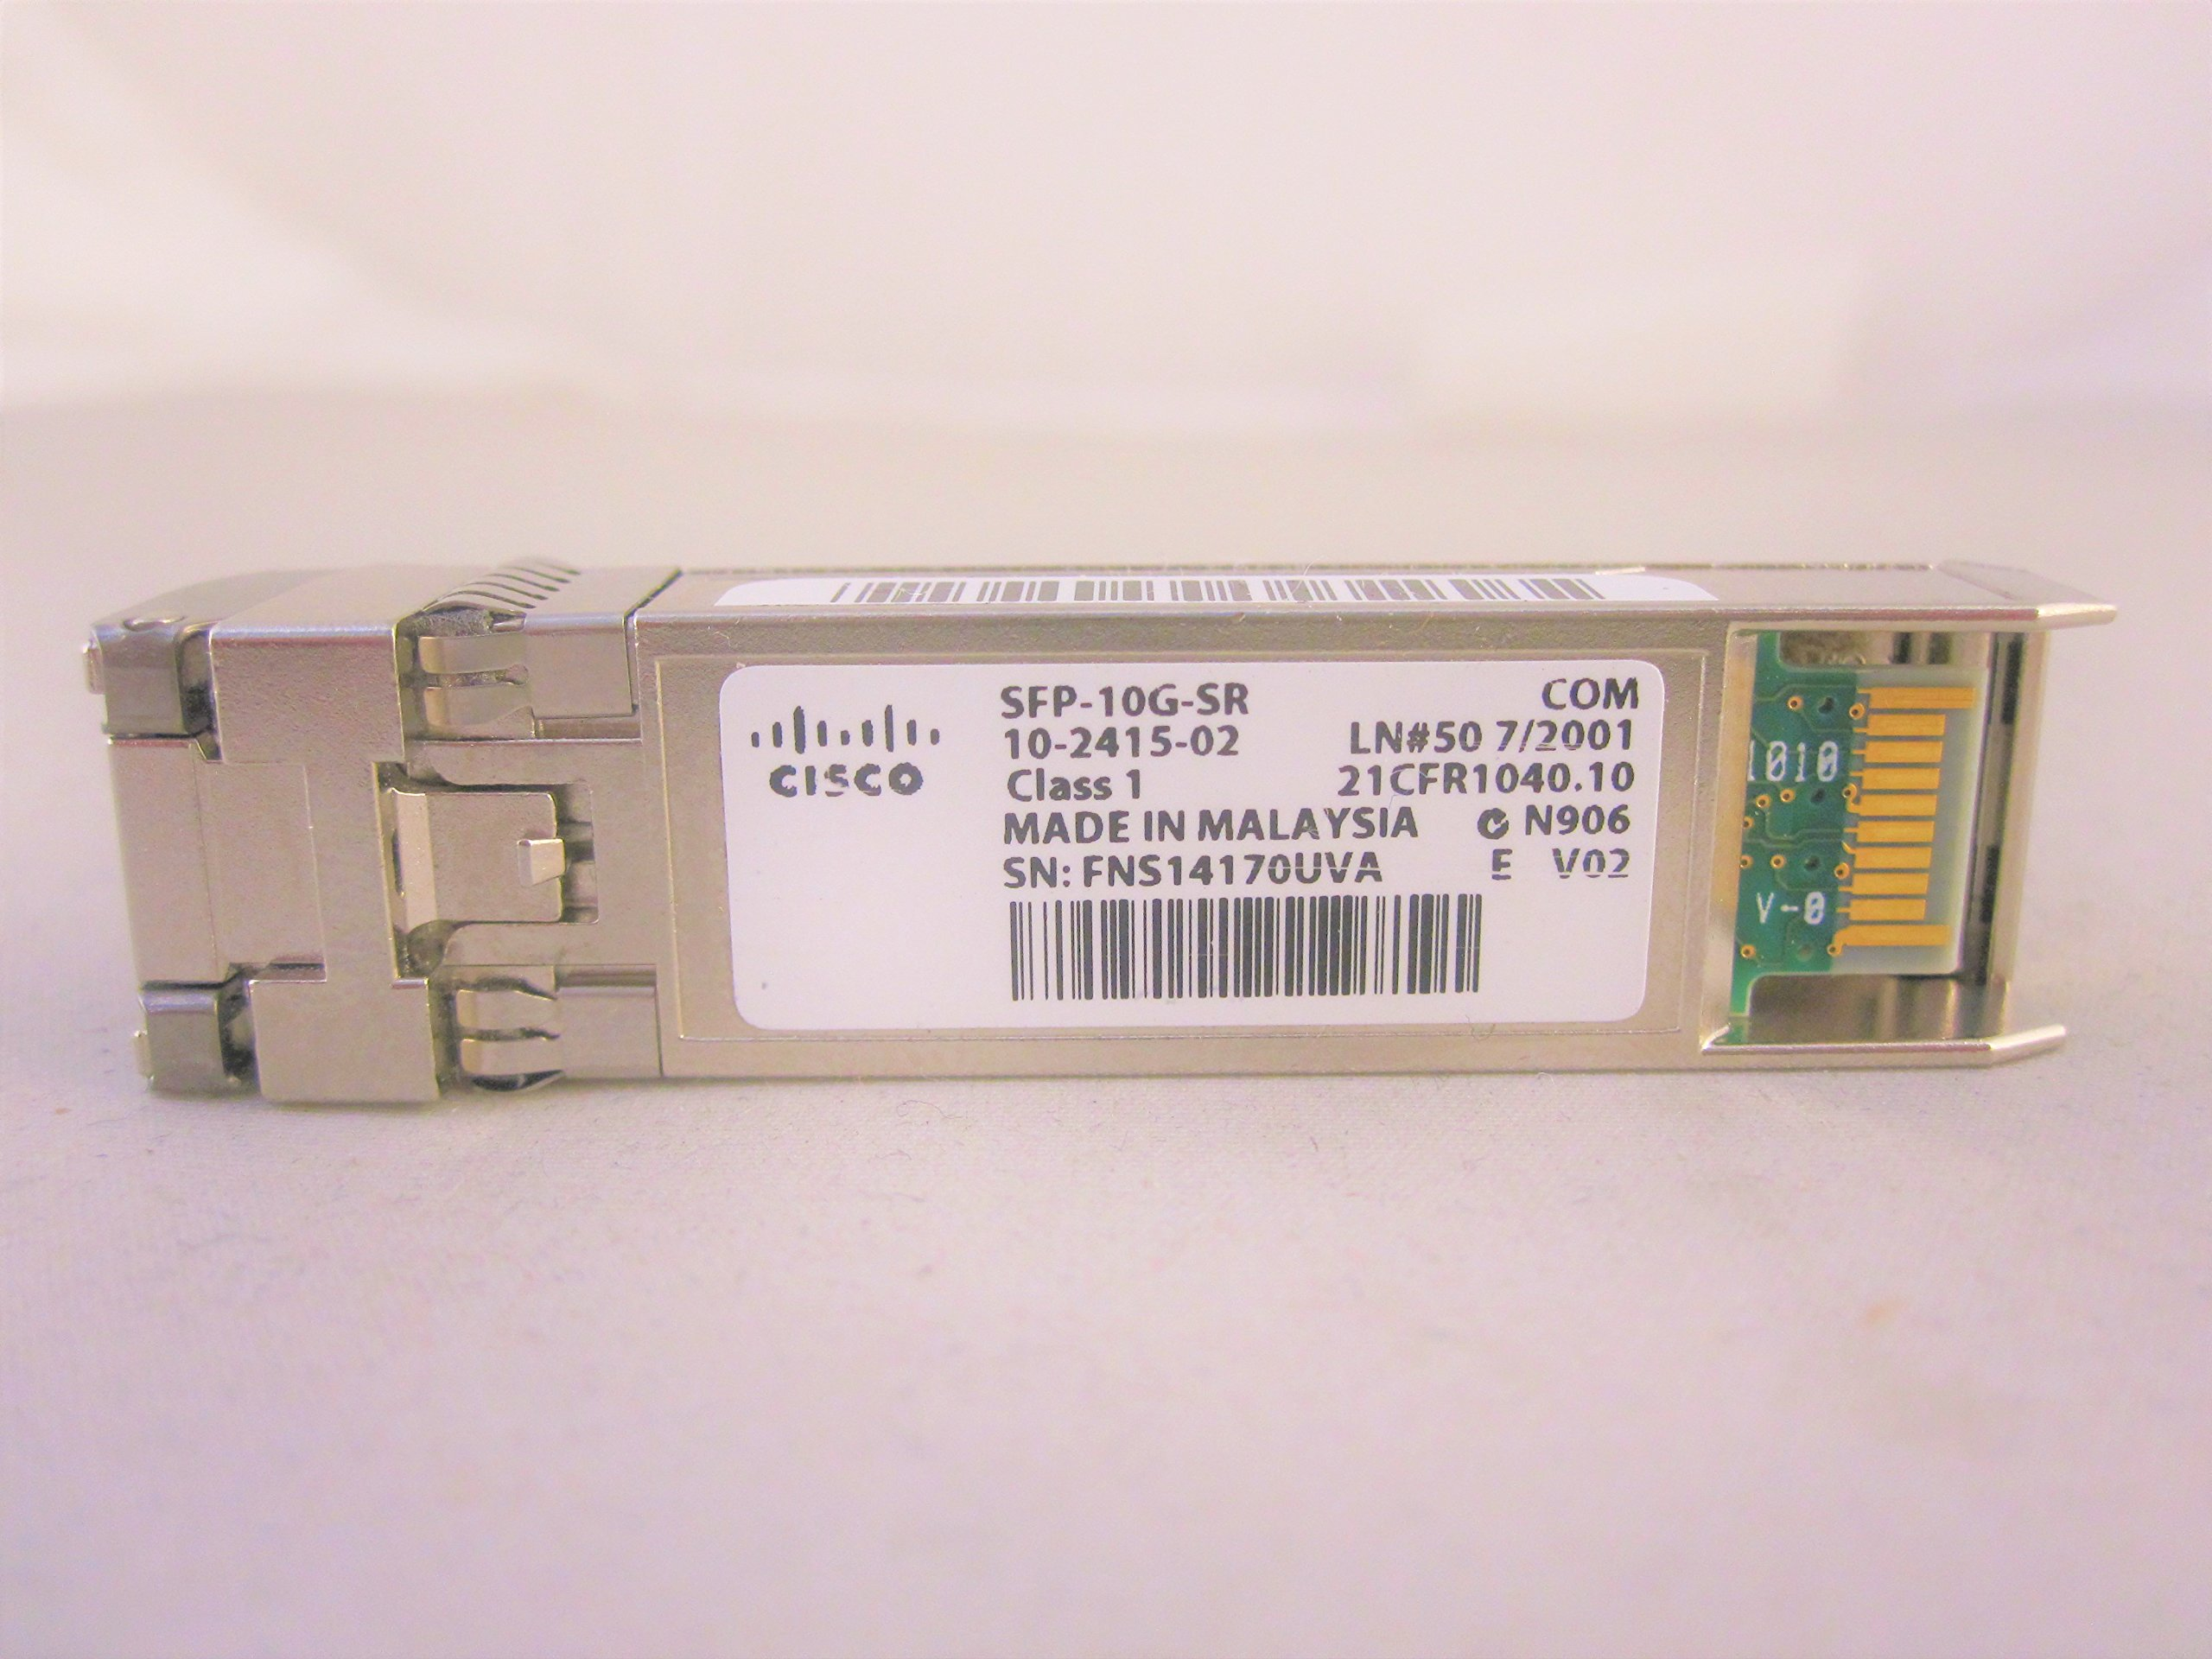 Cisco SFP-10G-SR 10GBase-SR SFP+ Transceiver by Cisco